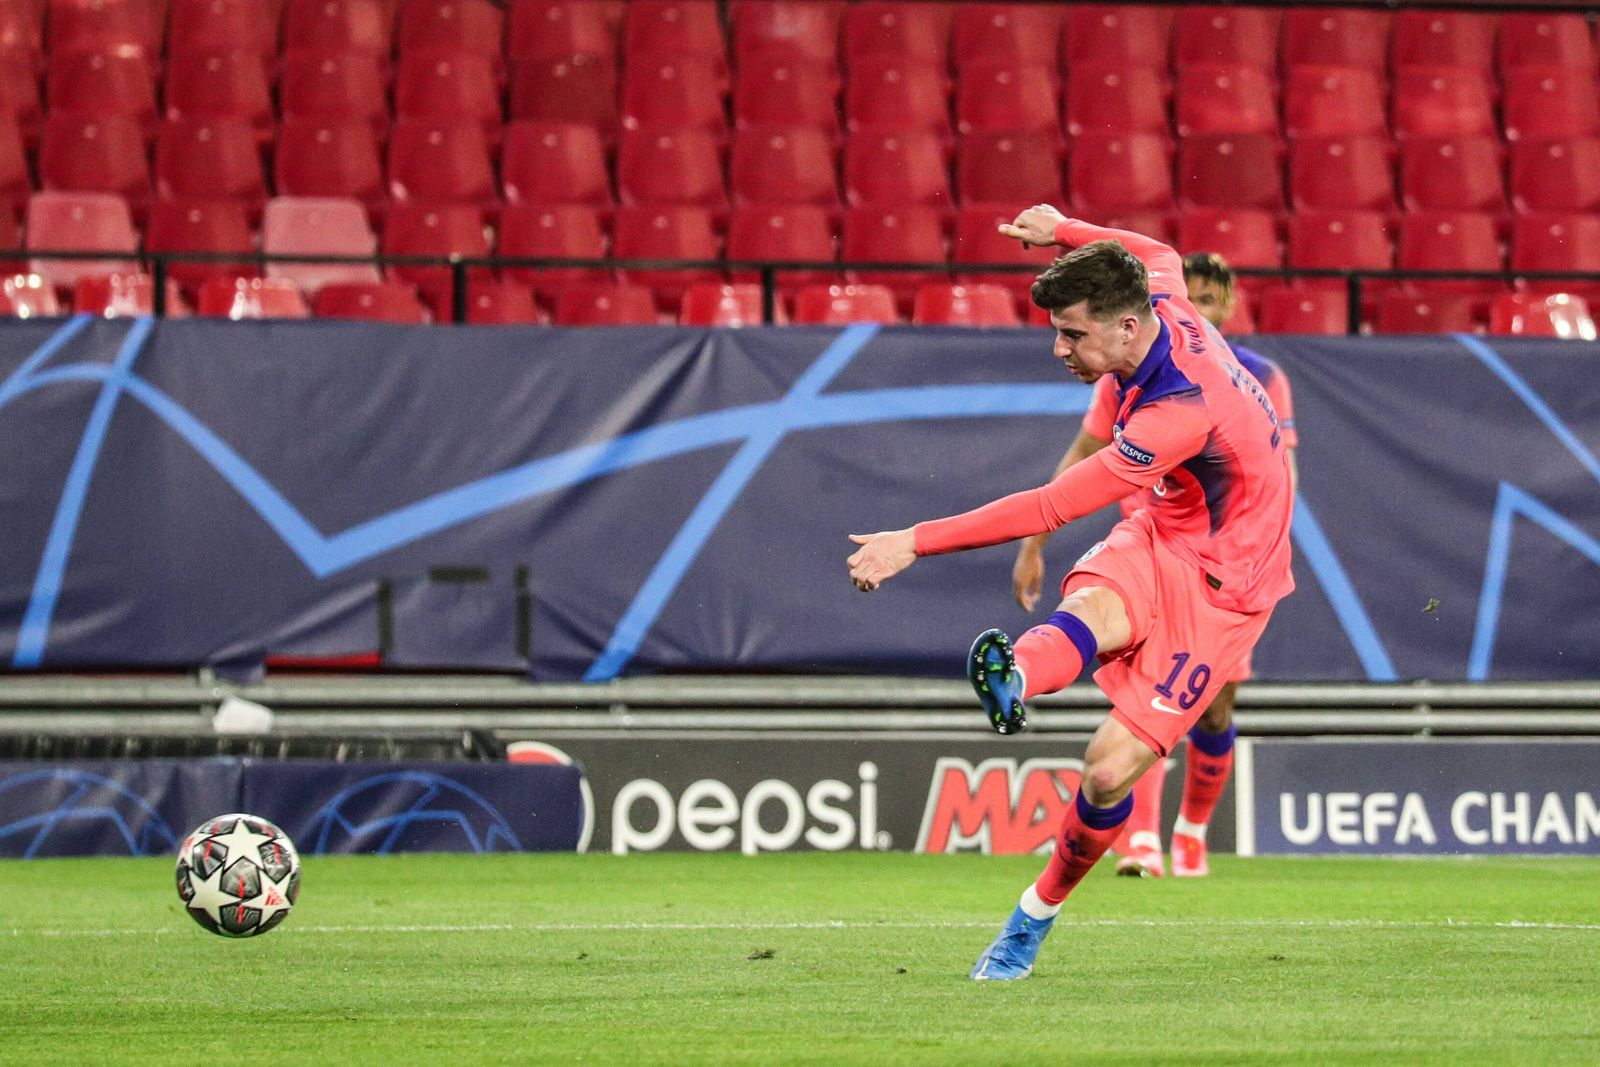 Mason Mount of Chelsea FC scoring first Chelsea goal during the UEFA Champions League Quarter Final First Leg game betw